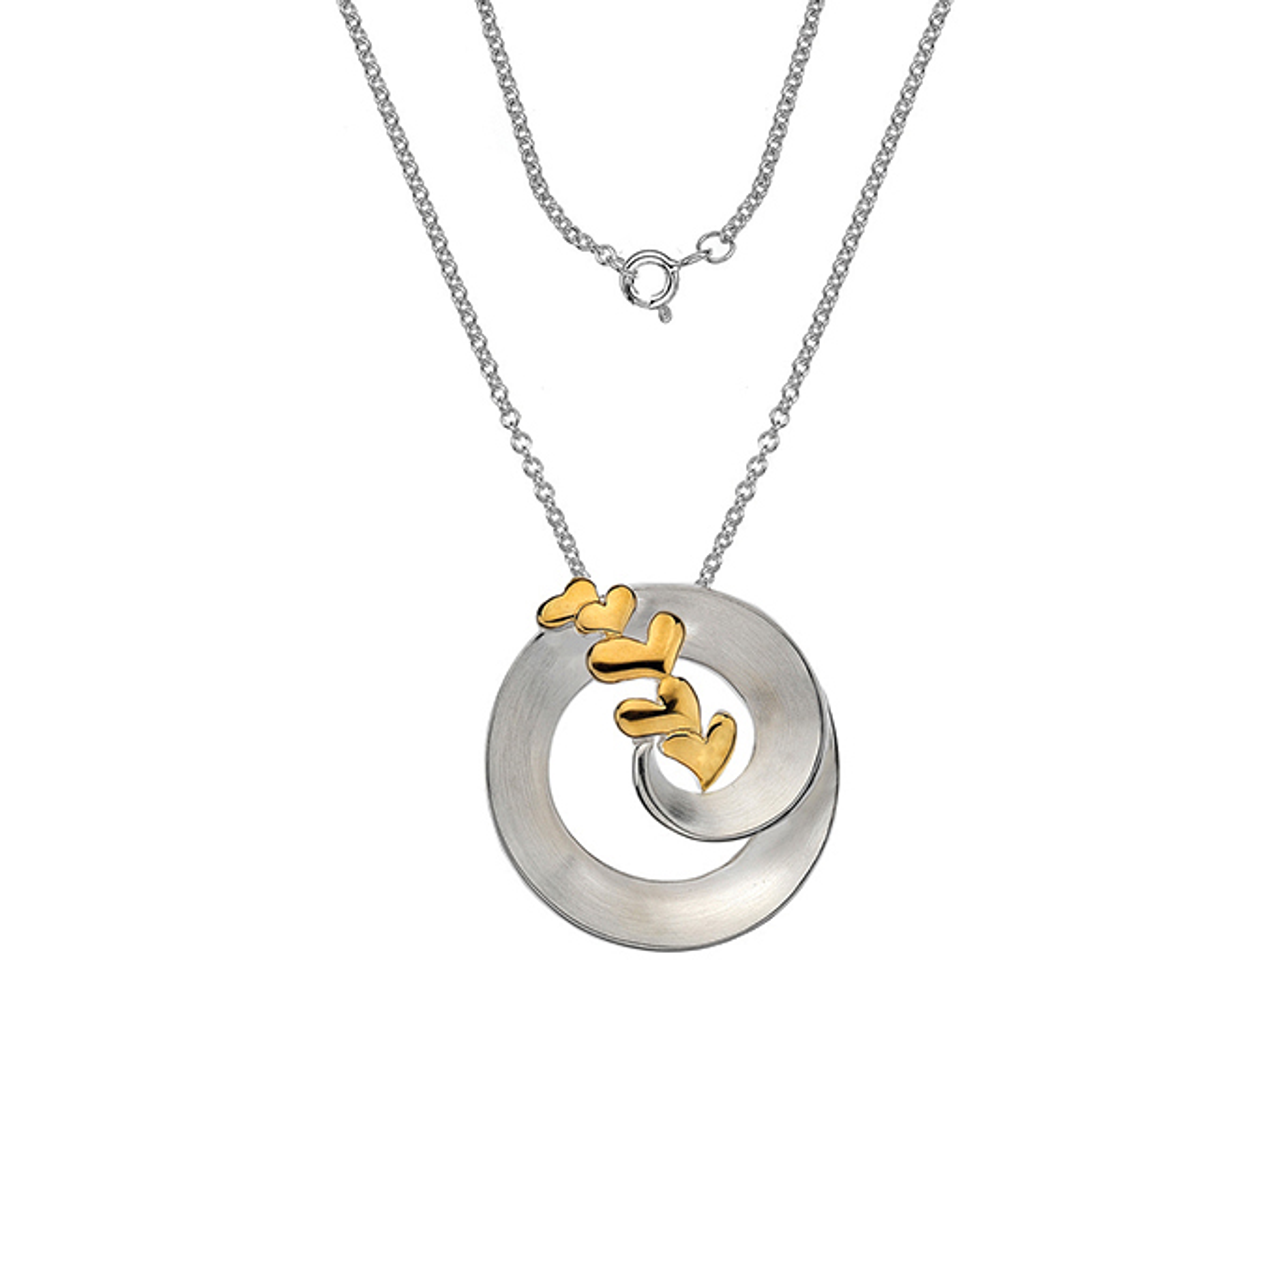 Silver & Gold plated Circle & Heart Pendant on Chain